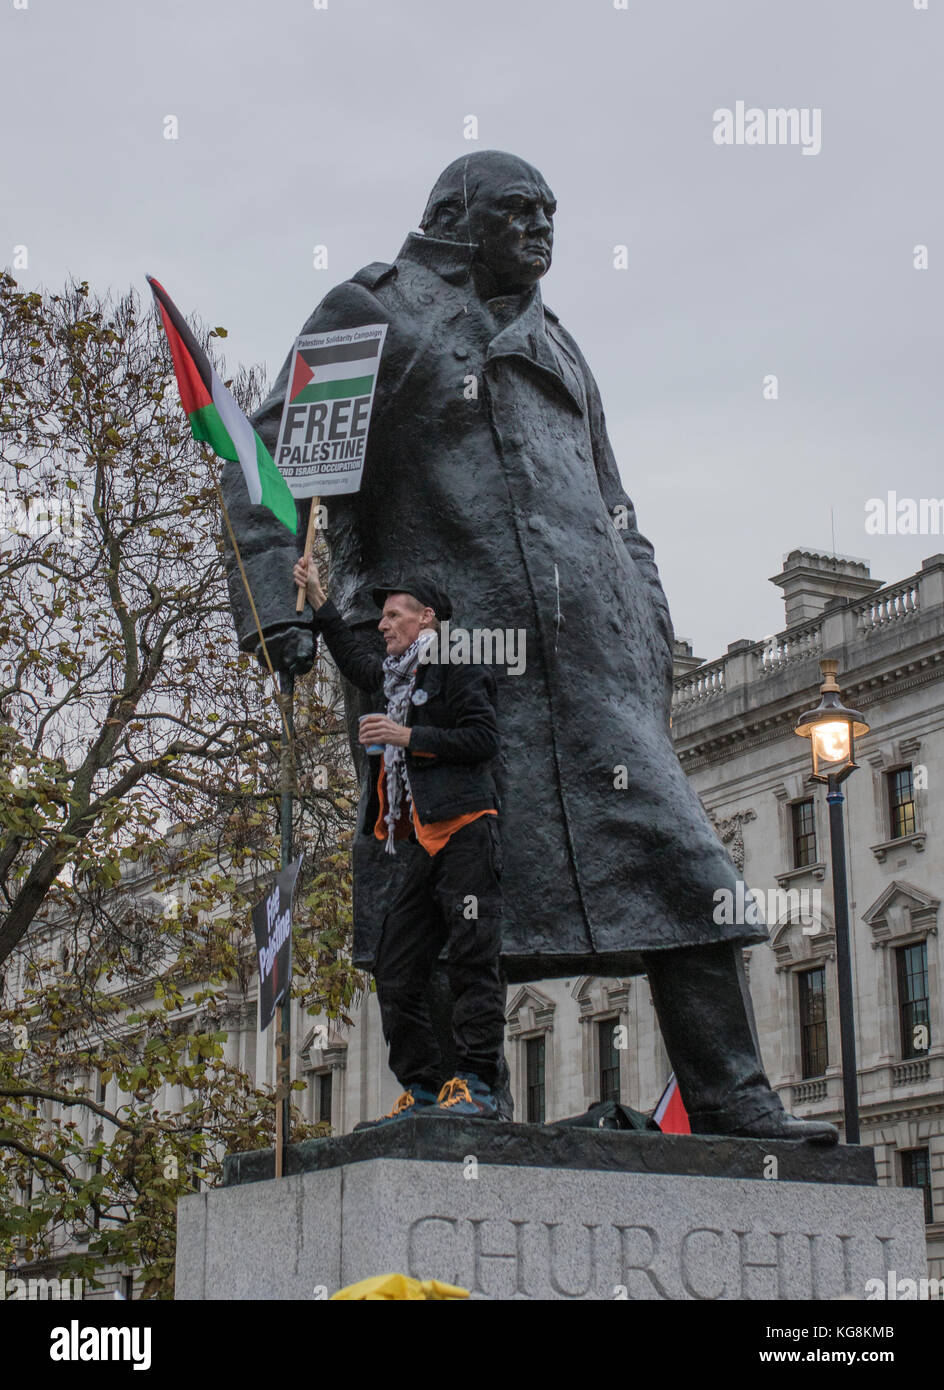 Palestine supporter standing next to Winston Churchill statue, London, UK, 4th November 2017 - Stock Image